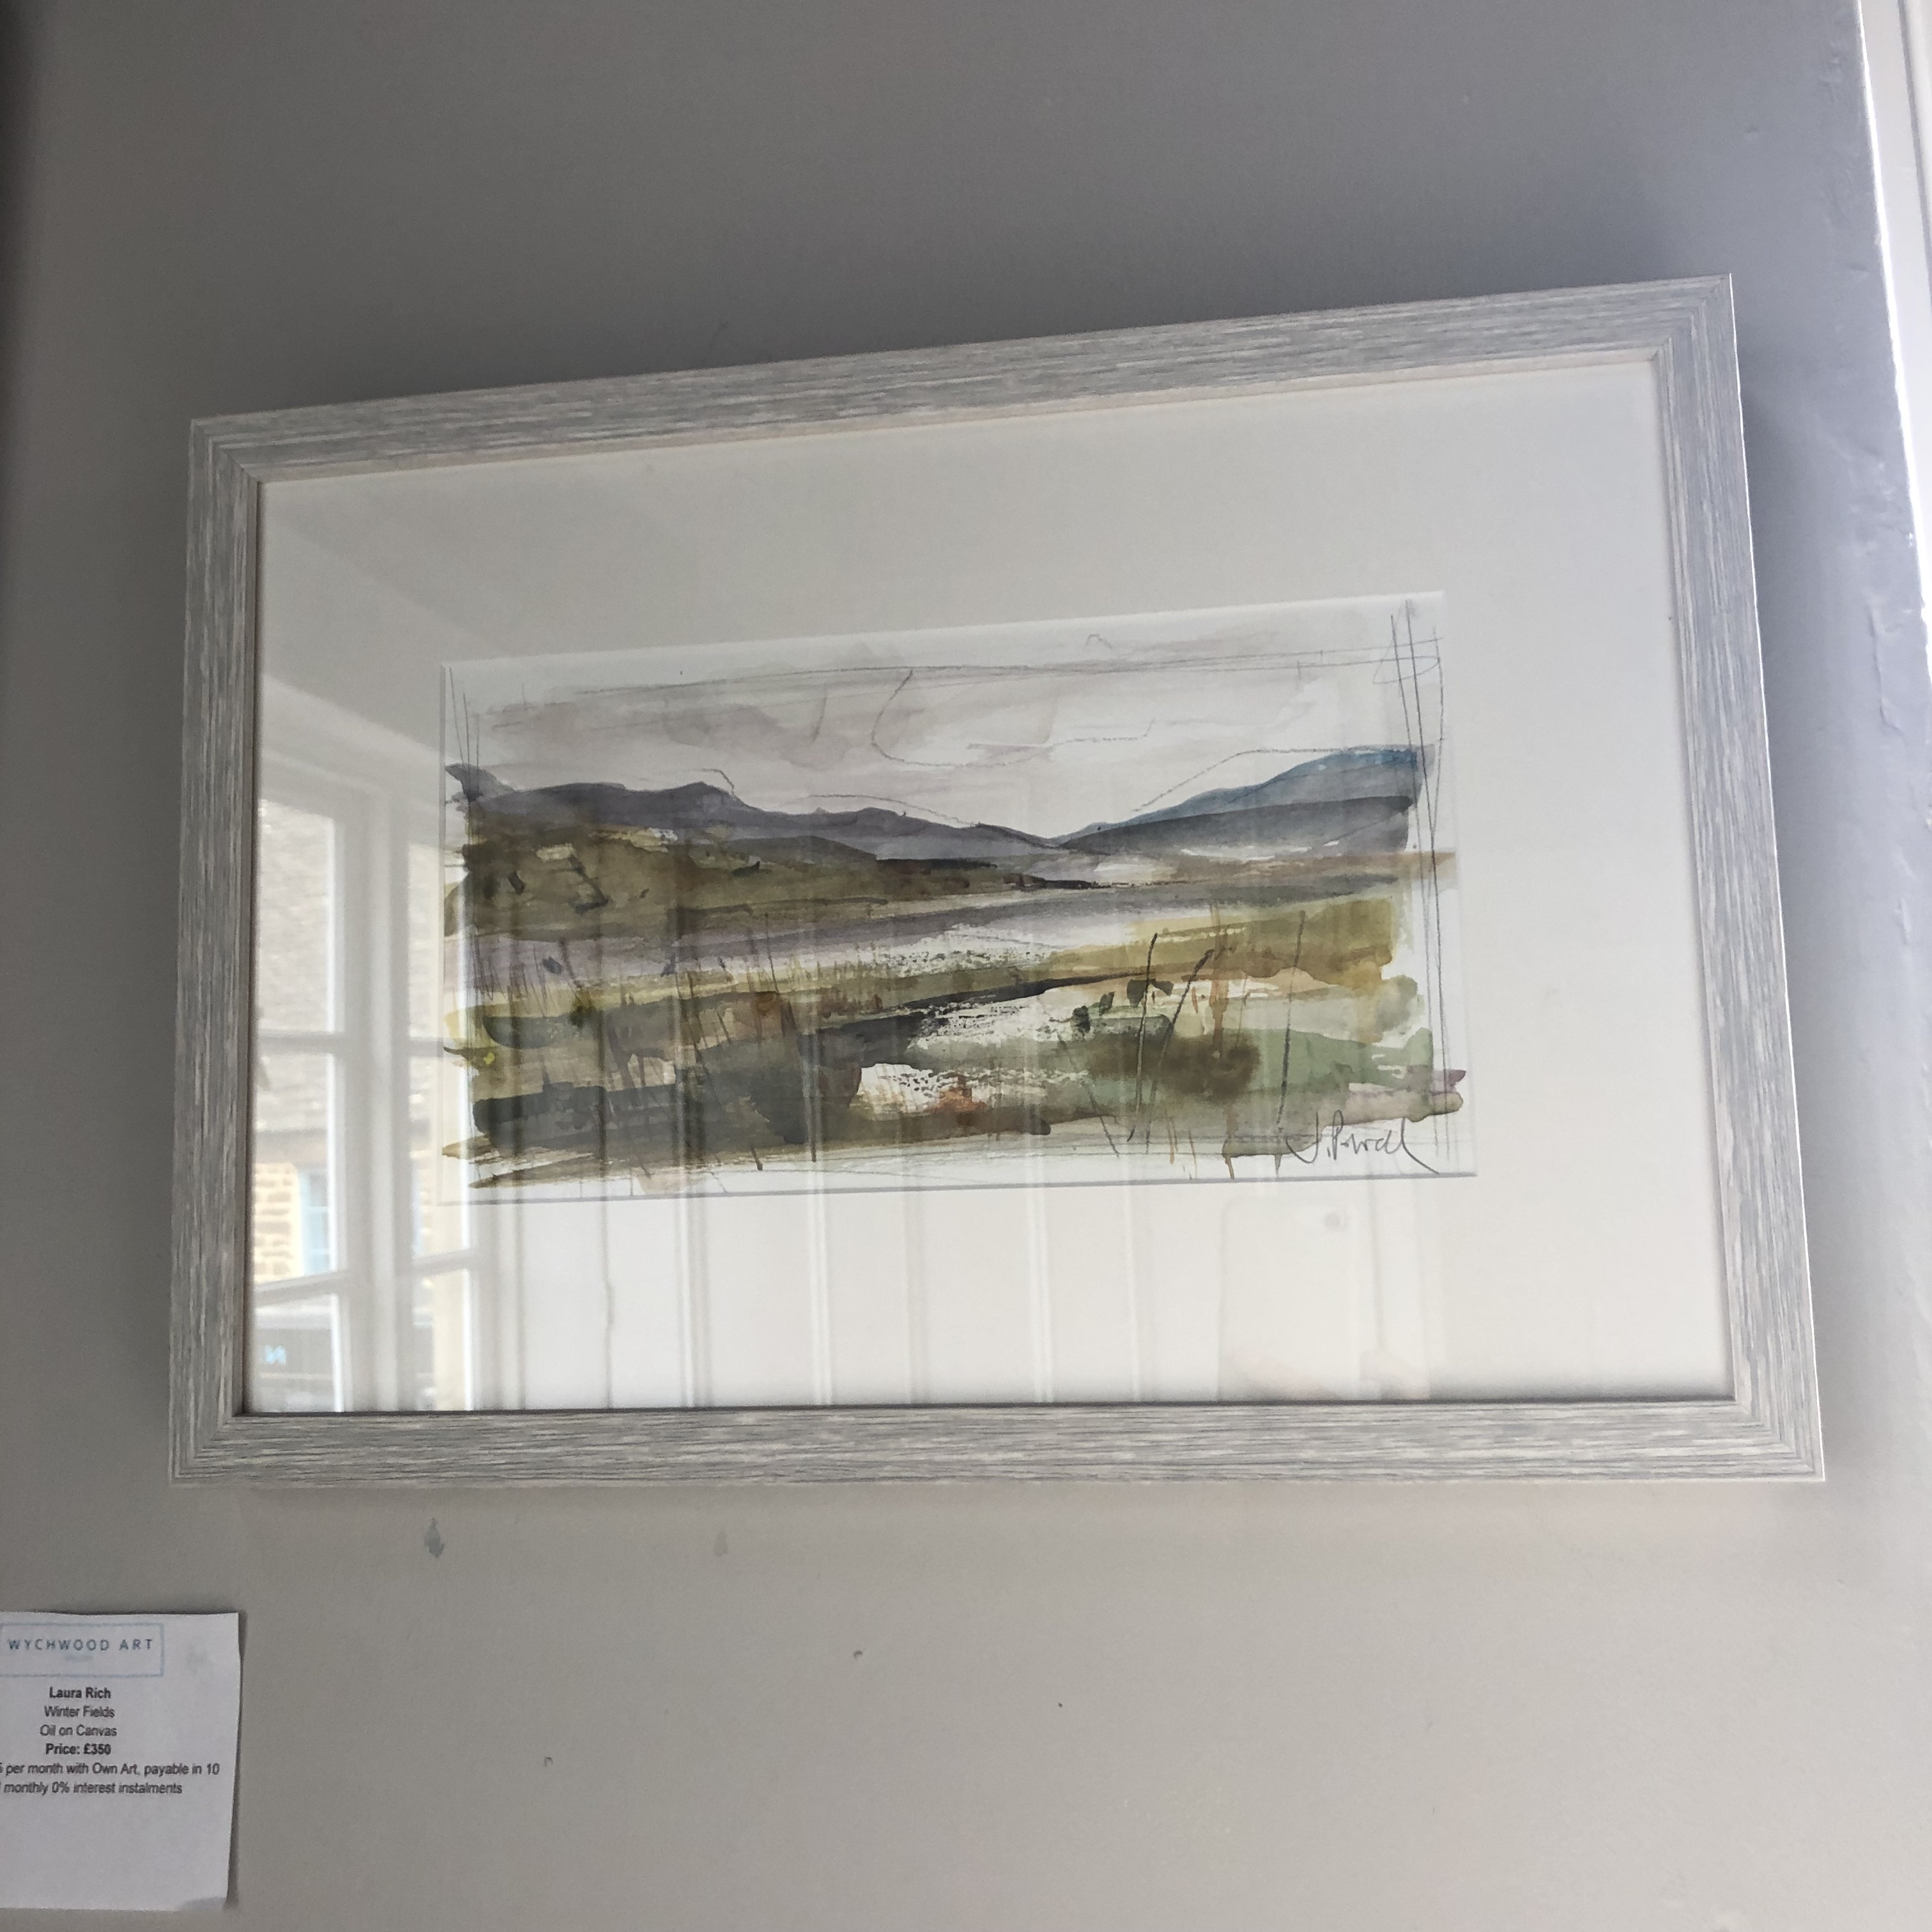 This piece depicts a loch nestled in the undulating Scottish landscape.